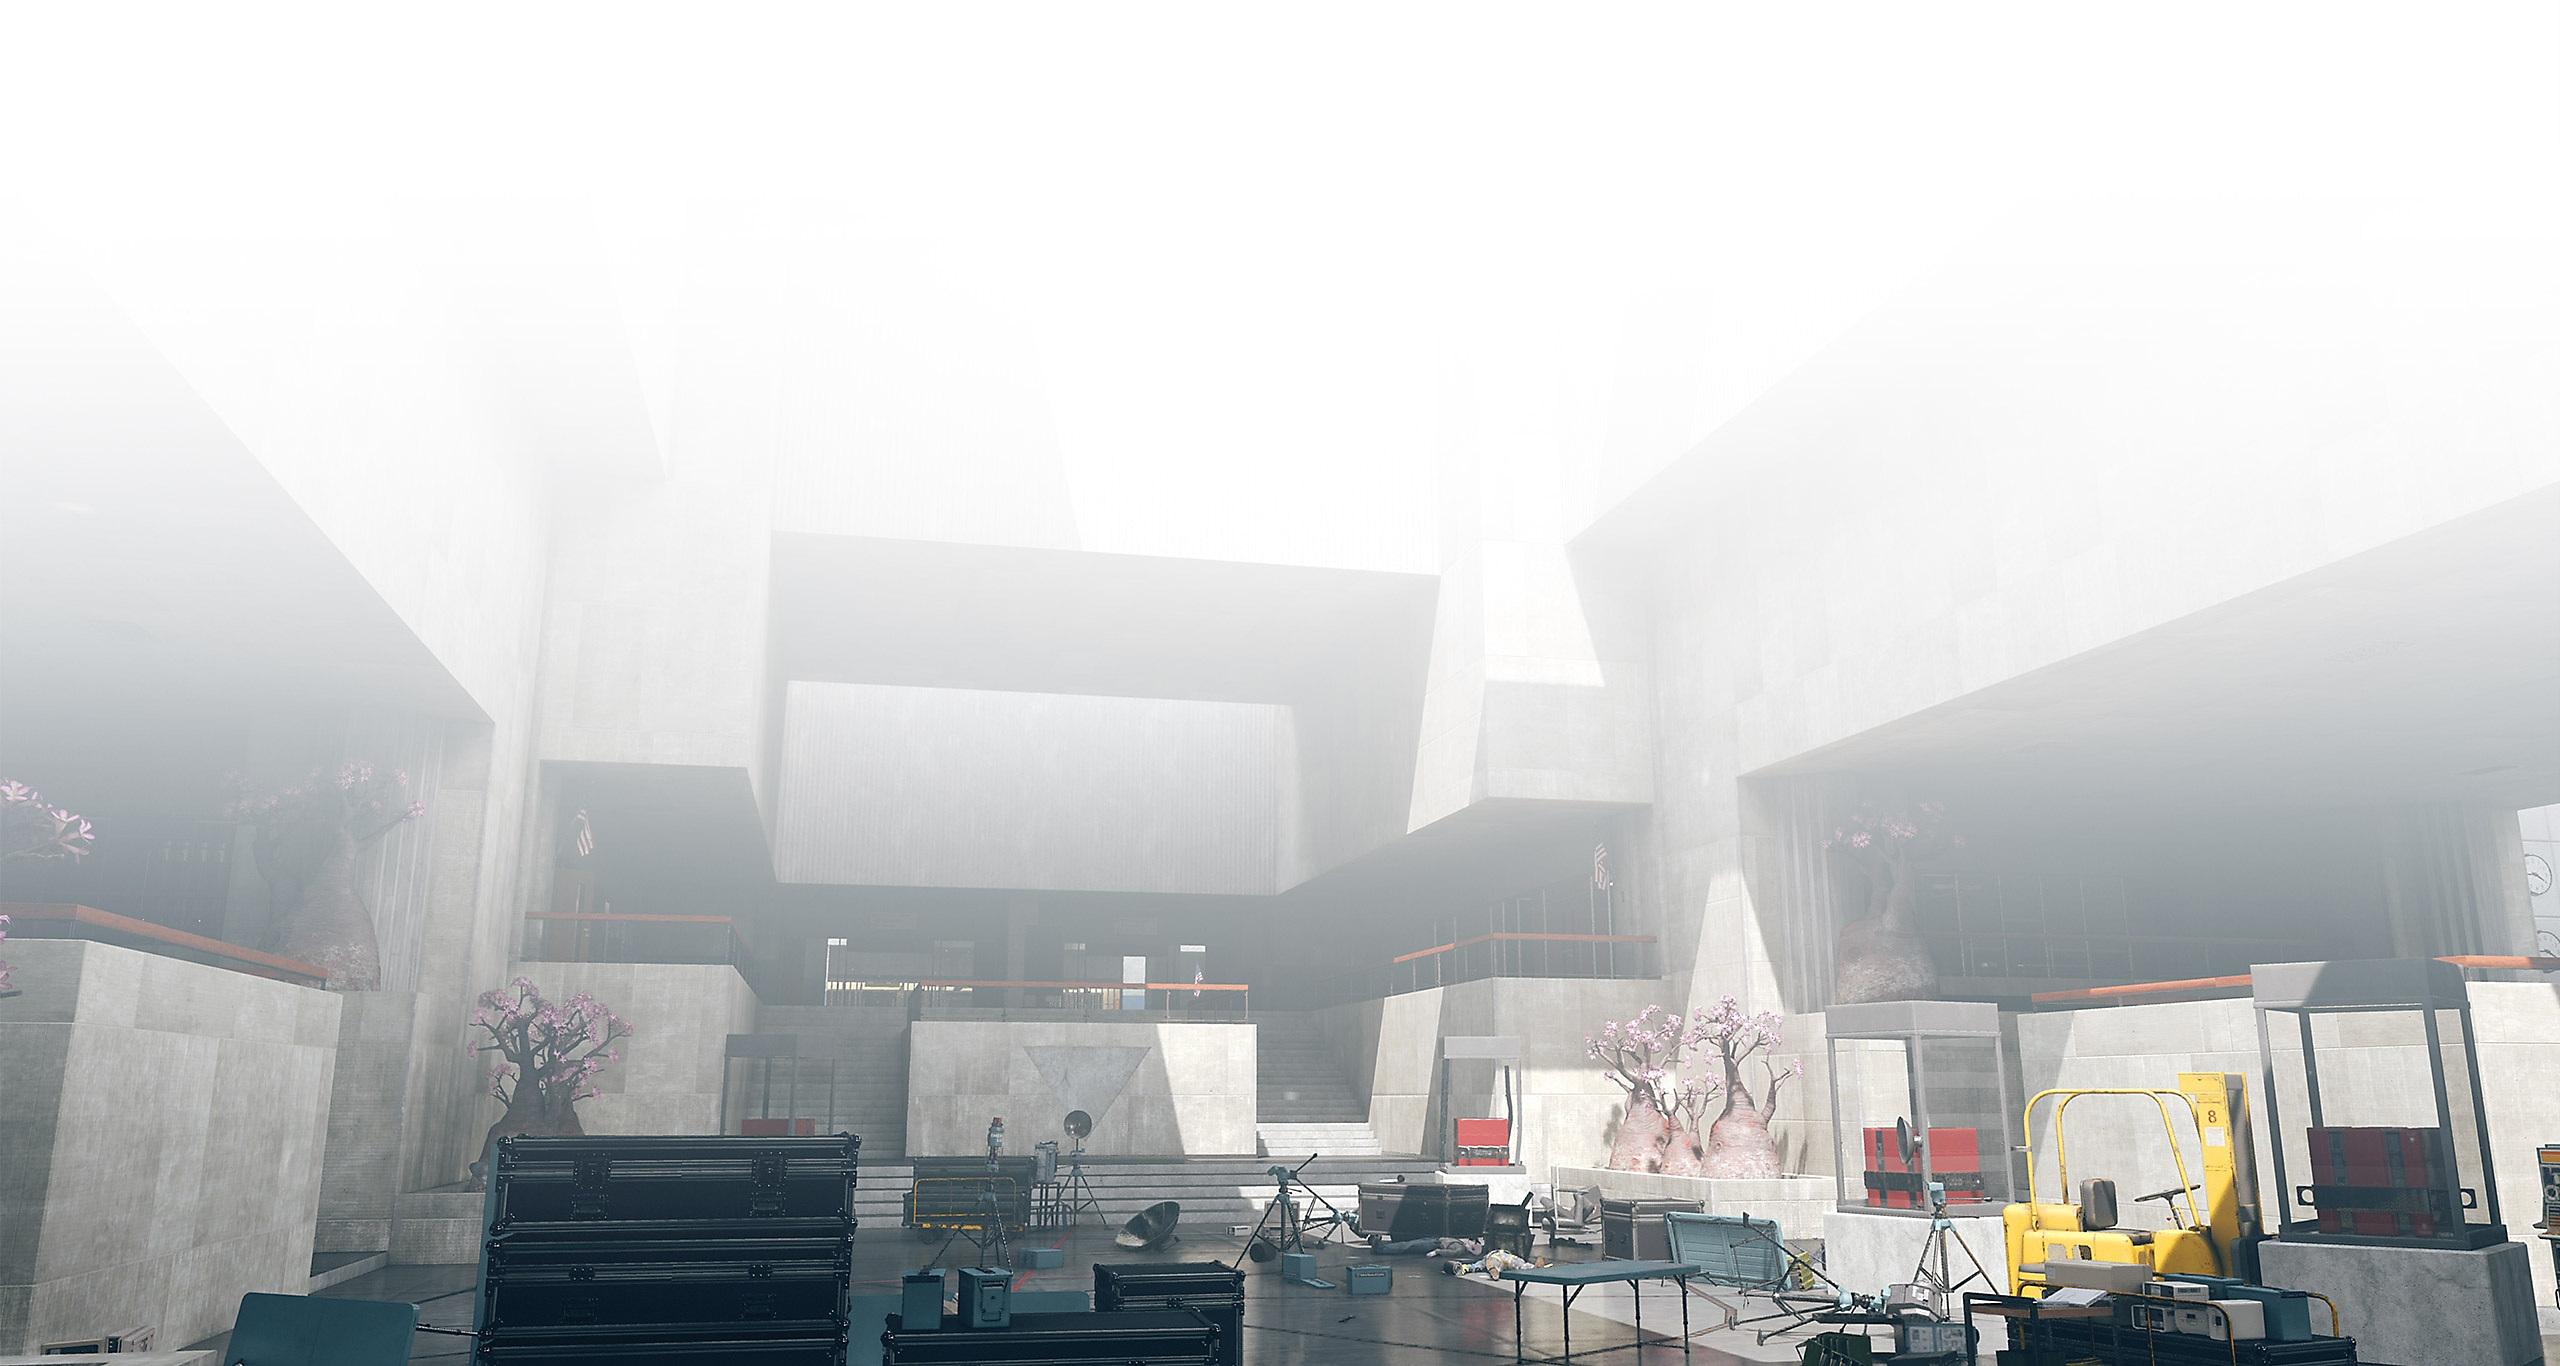 Get lost in an ever-shifting building beset by supernatural forces